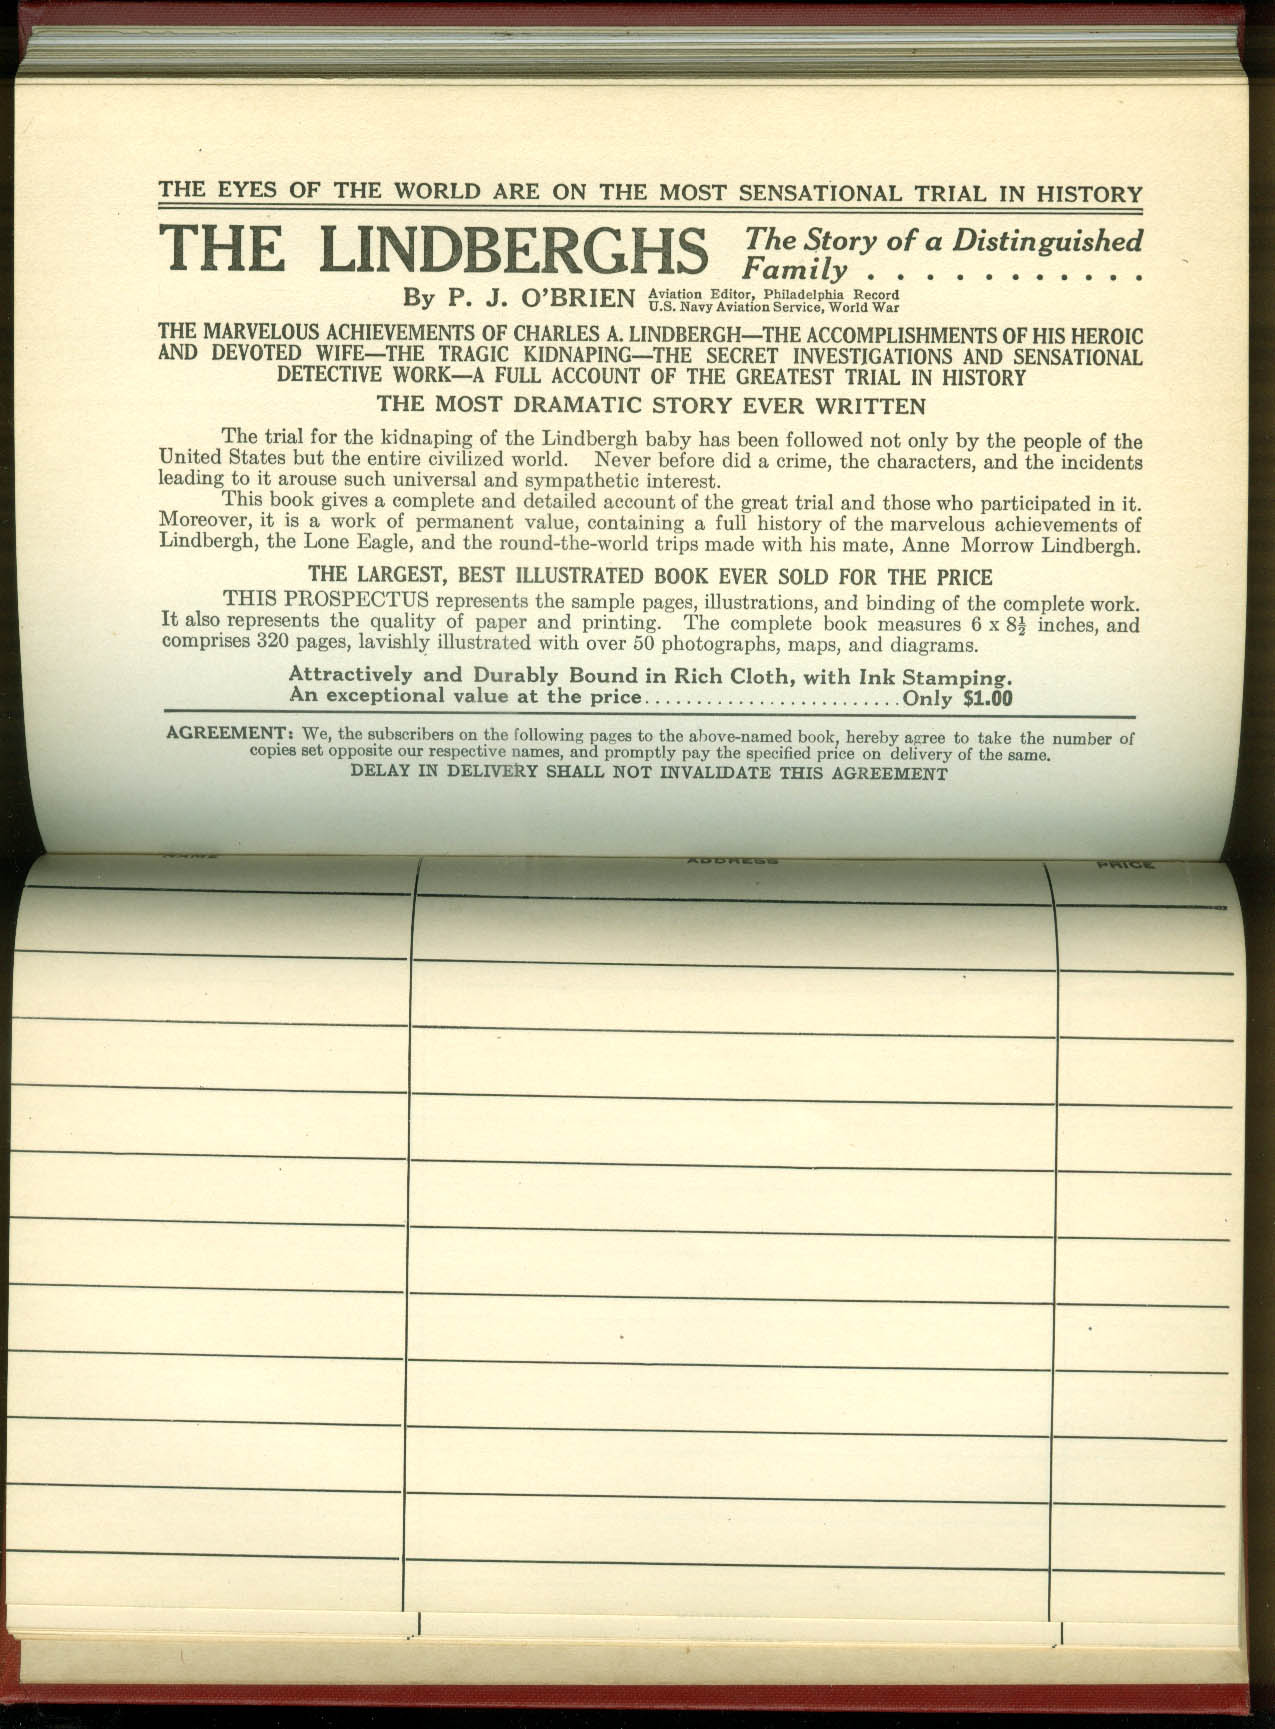 The Lindberghs Story of a Distinguished Family publisher's prospectus 1935